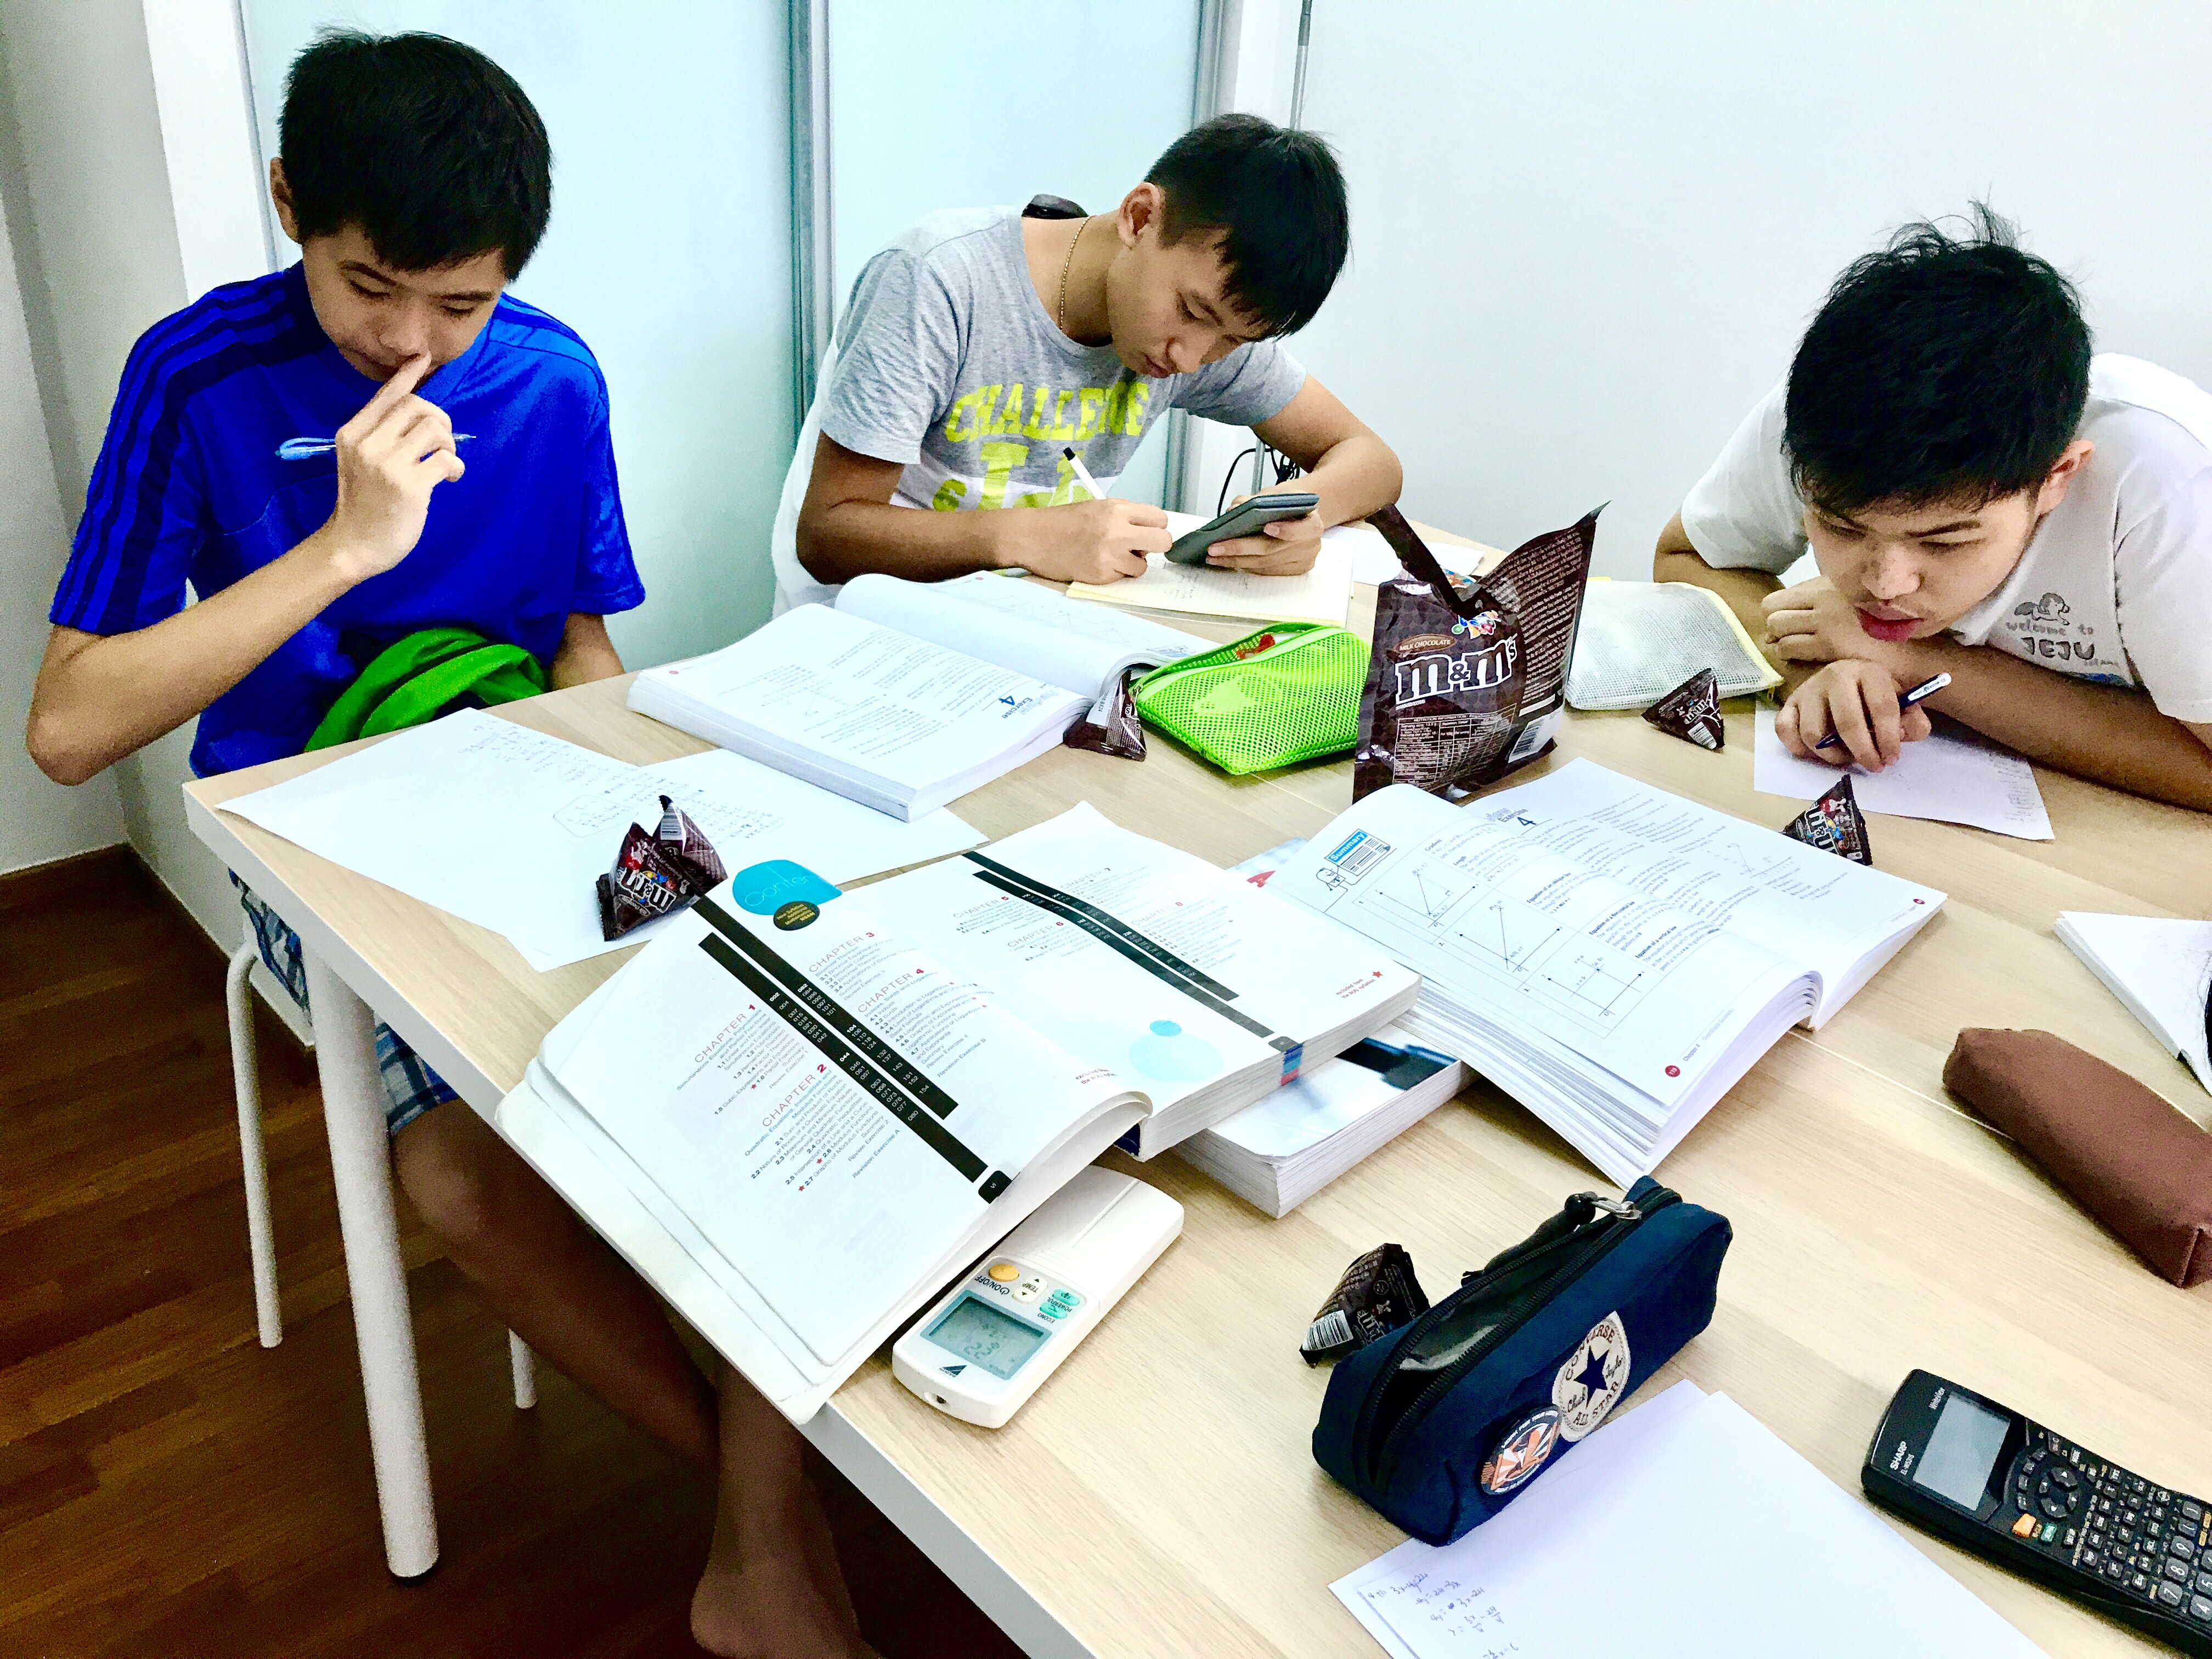 Add Maths Tuition punggol tuition centre english maths science primary PSLE O level tuition small group